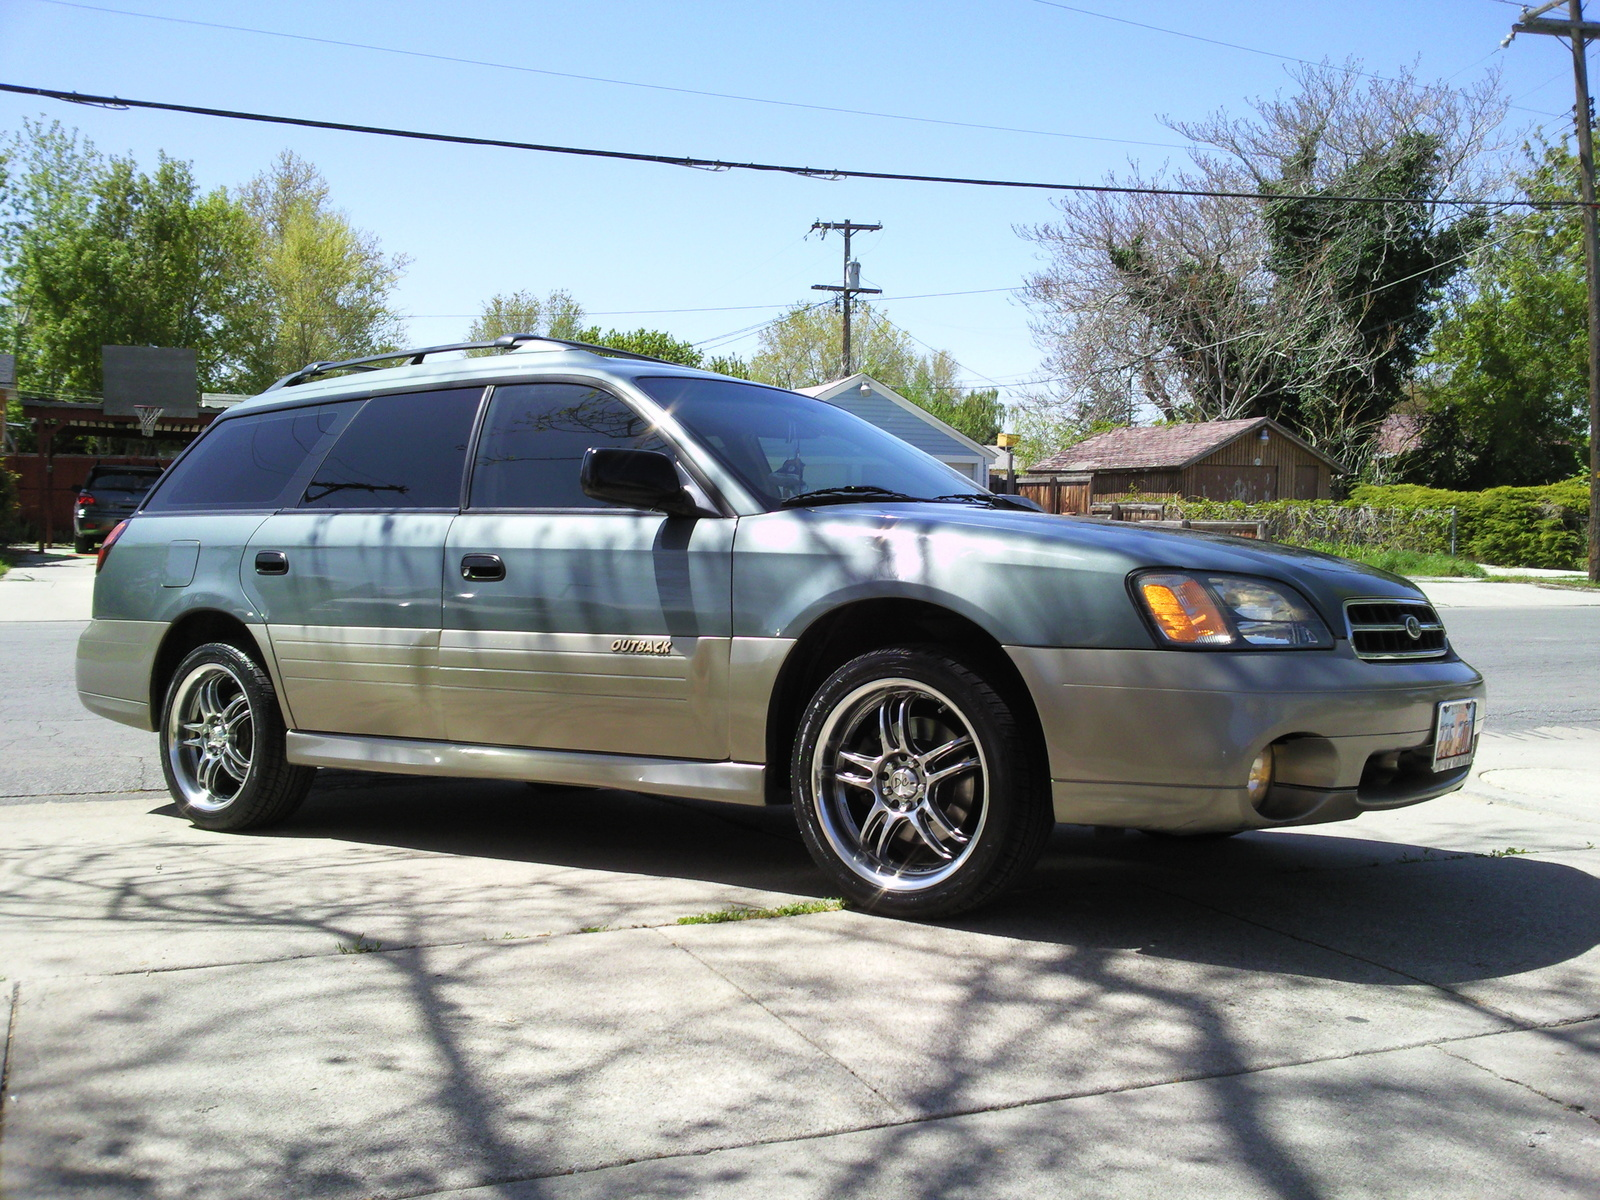 2002 subaru legacy user reviews cargurus picture of 2002 subaru outback base wagon exterior galleryworthy vanachro Images